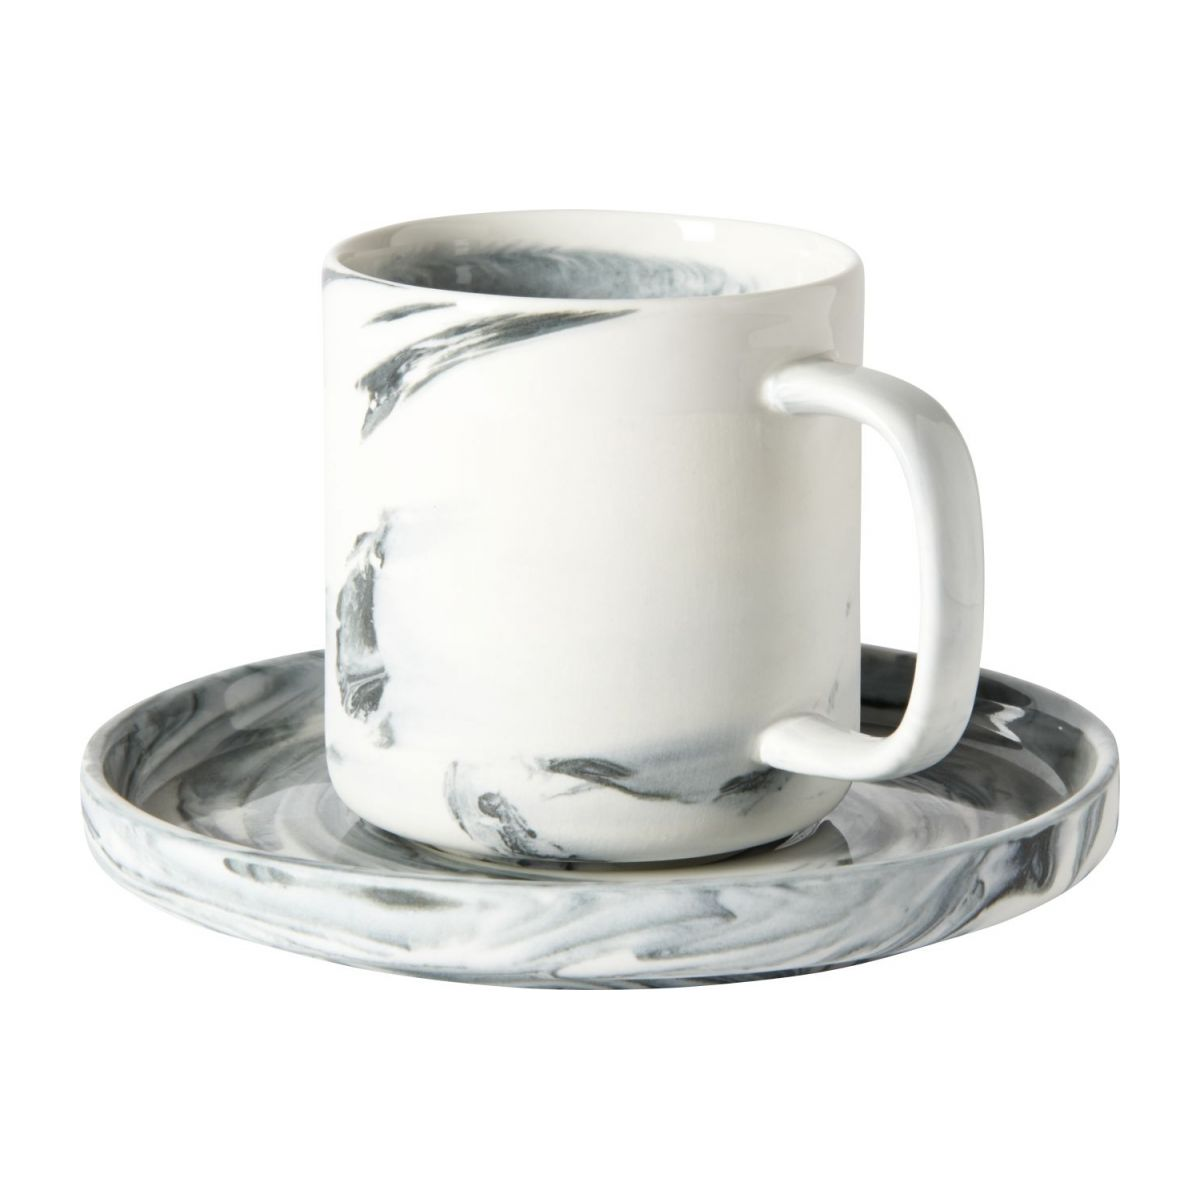 Coffee cup and saucer n°1